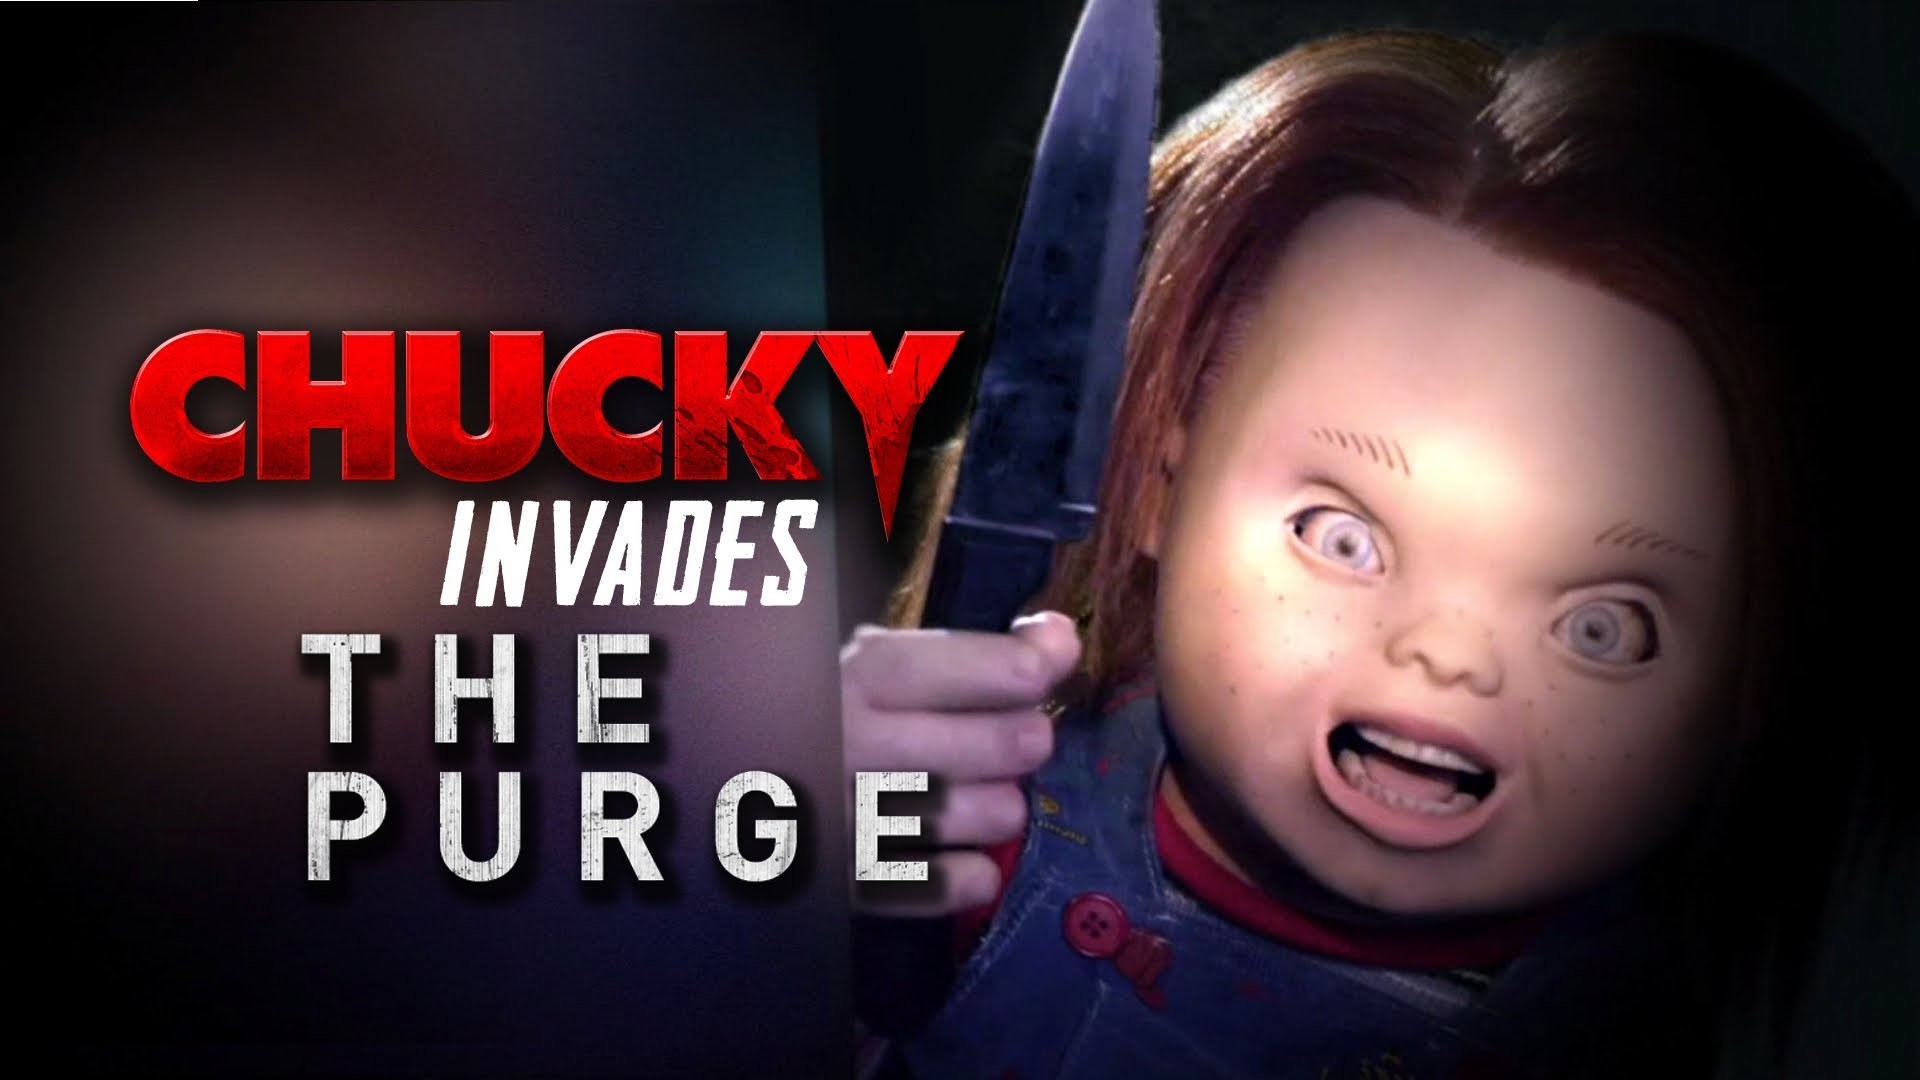 Video – Chucky Invades The Purge – Horror Movie MashUp (2013) Film HD    Child's Play Wiki   FANDOM powered by Wikia